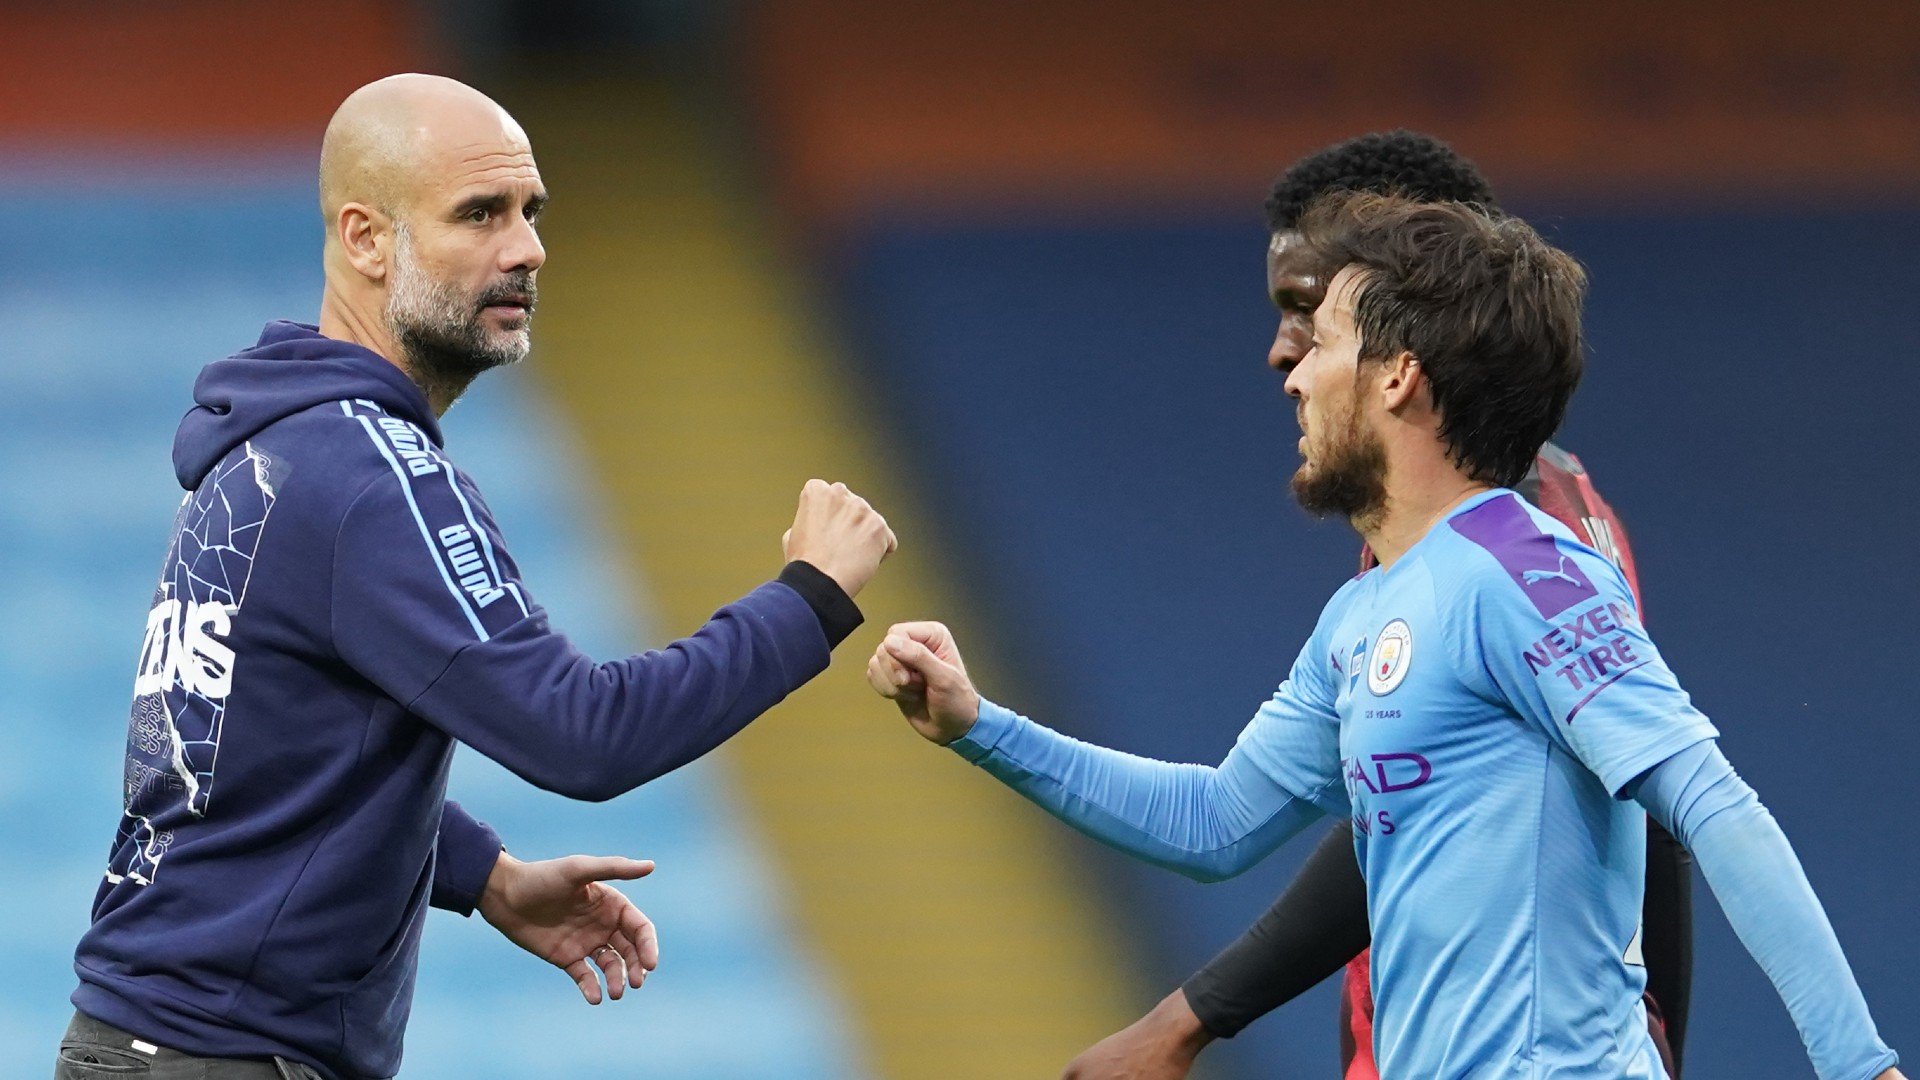 'I love them and will miss them all' - David Silva reflects on 'emotional' final Premier League match with Manchester City